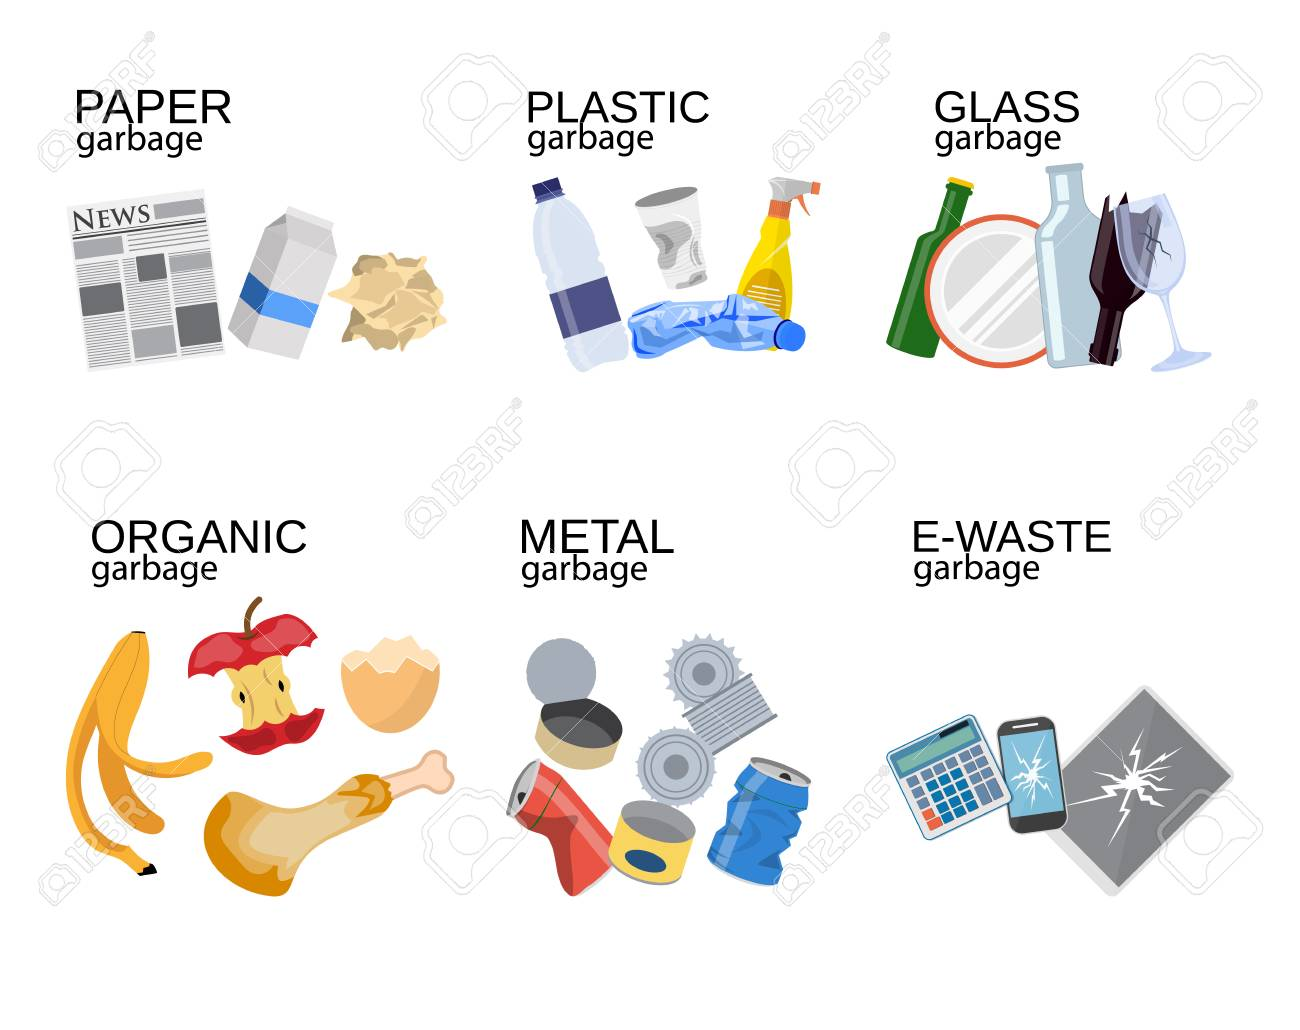 Garbage sorting food waste, glass, metal and paper, plastic electronic, organic. Vector illustration in flat style - 94899772